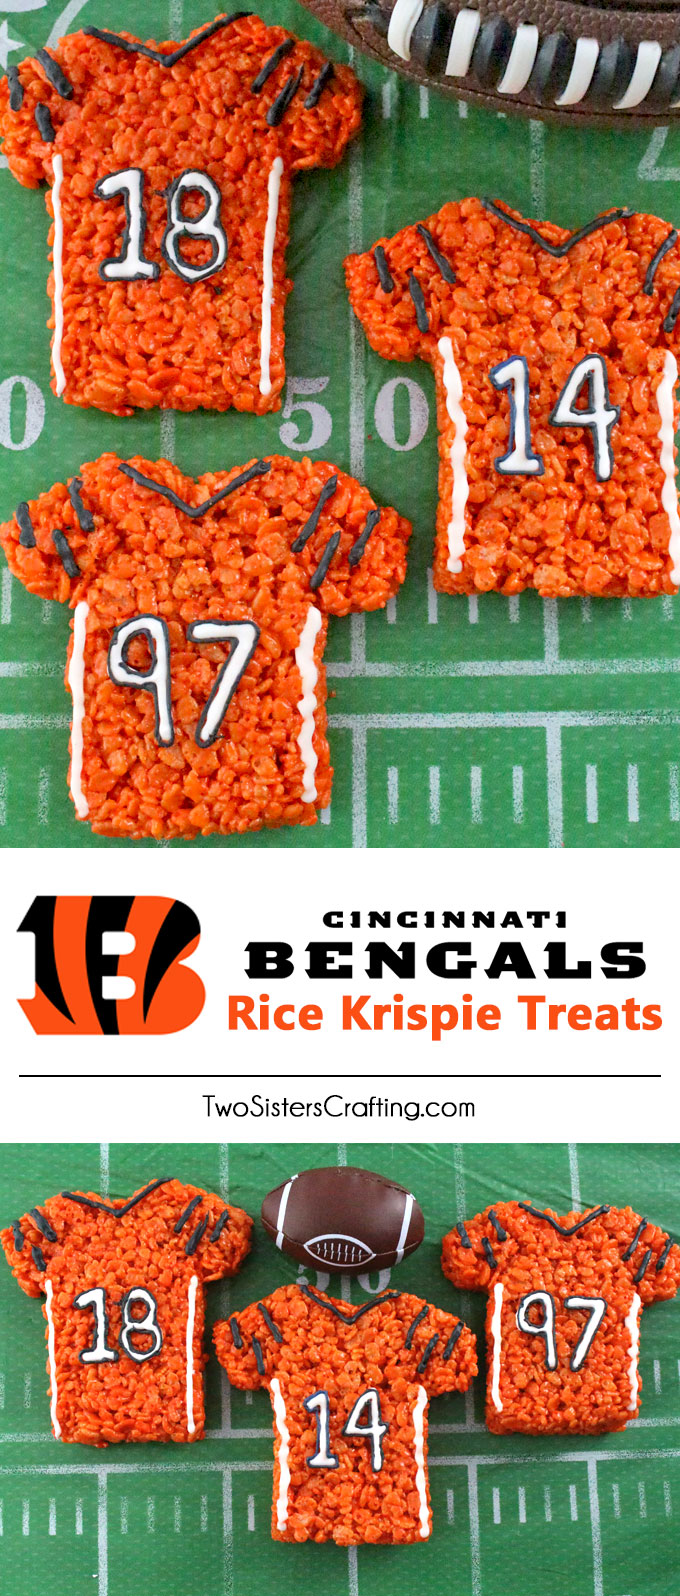 These Cincinnati Bengals Rice Krispie Treats Team Jerseys are a fun football dessert for a game day football party, an NFL playoff party, a Super Bowl party or as a special snack for the Cincinnati Bengals fans in your life. Go Bengals! And follow us for more fun Super Bowl Food Ideas.